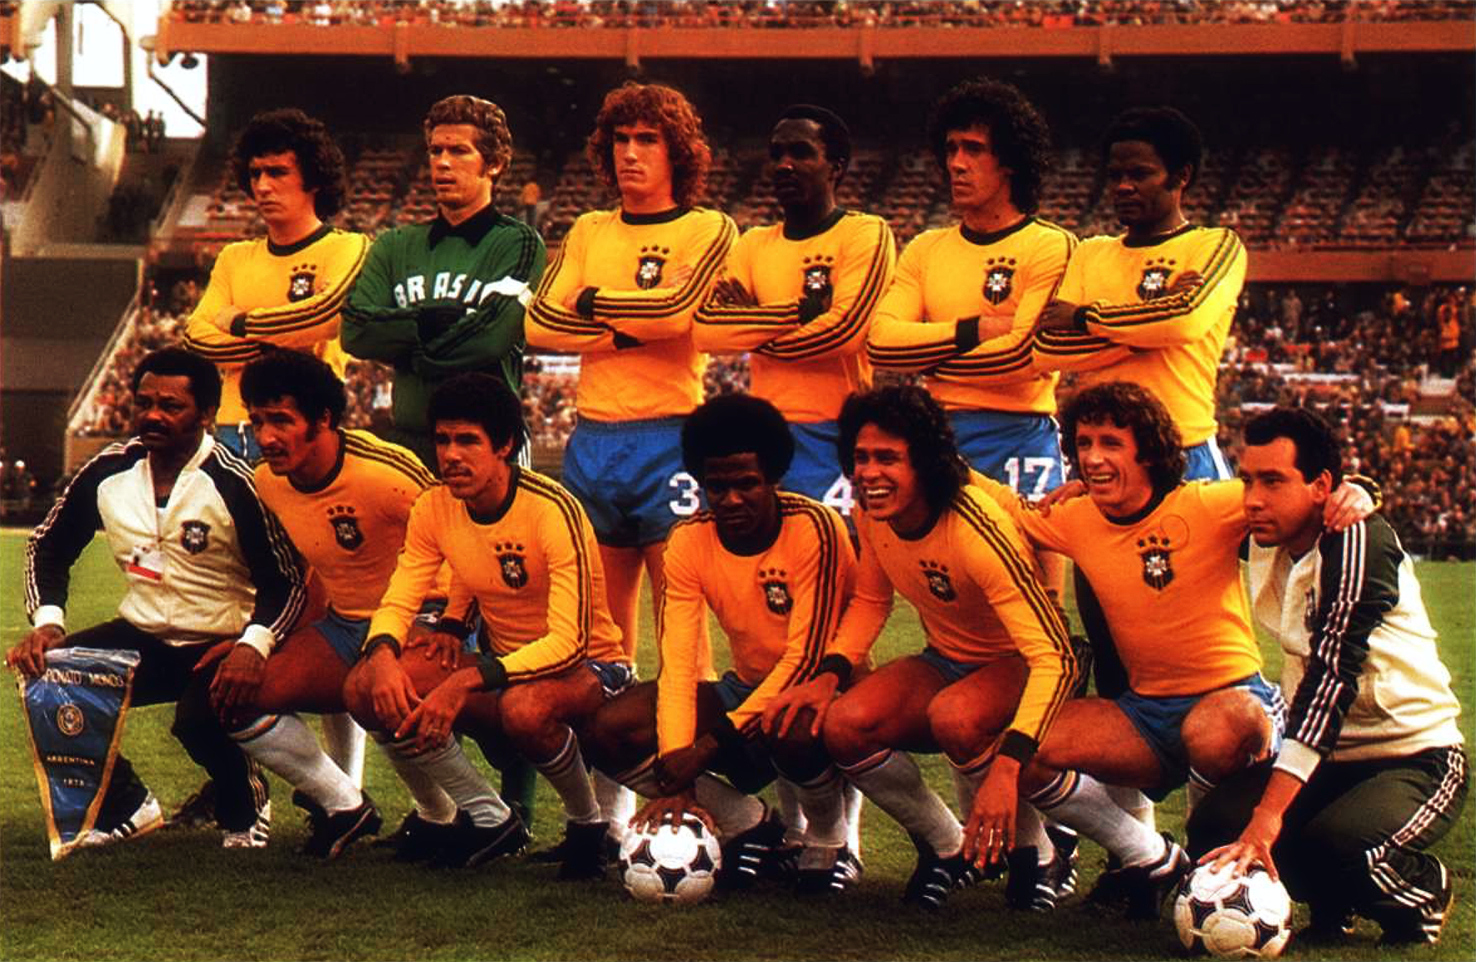 The vintage football club bresil 1978 - Resultat coupe d europe de foot ...